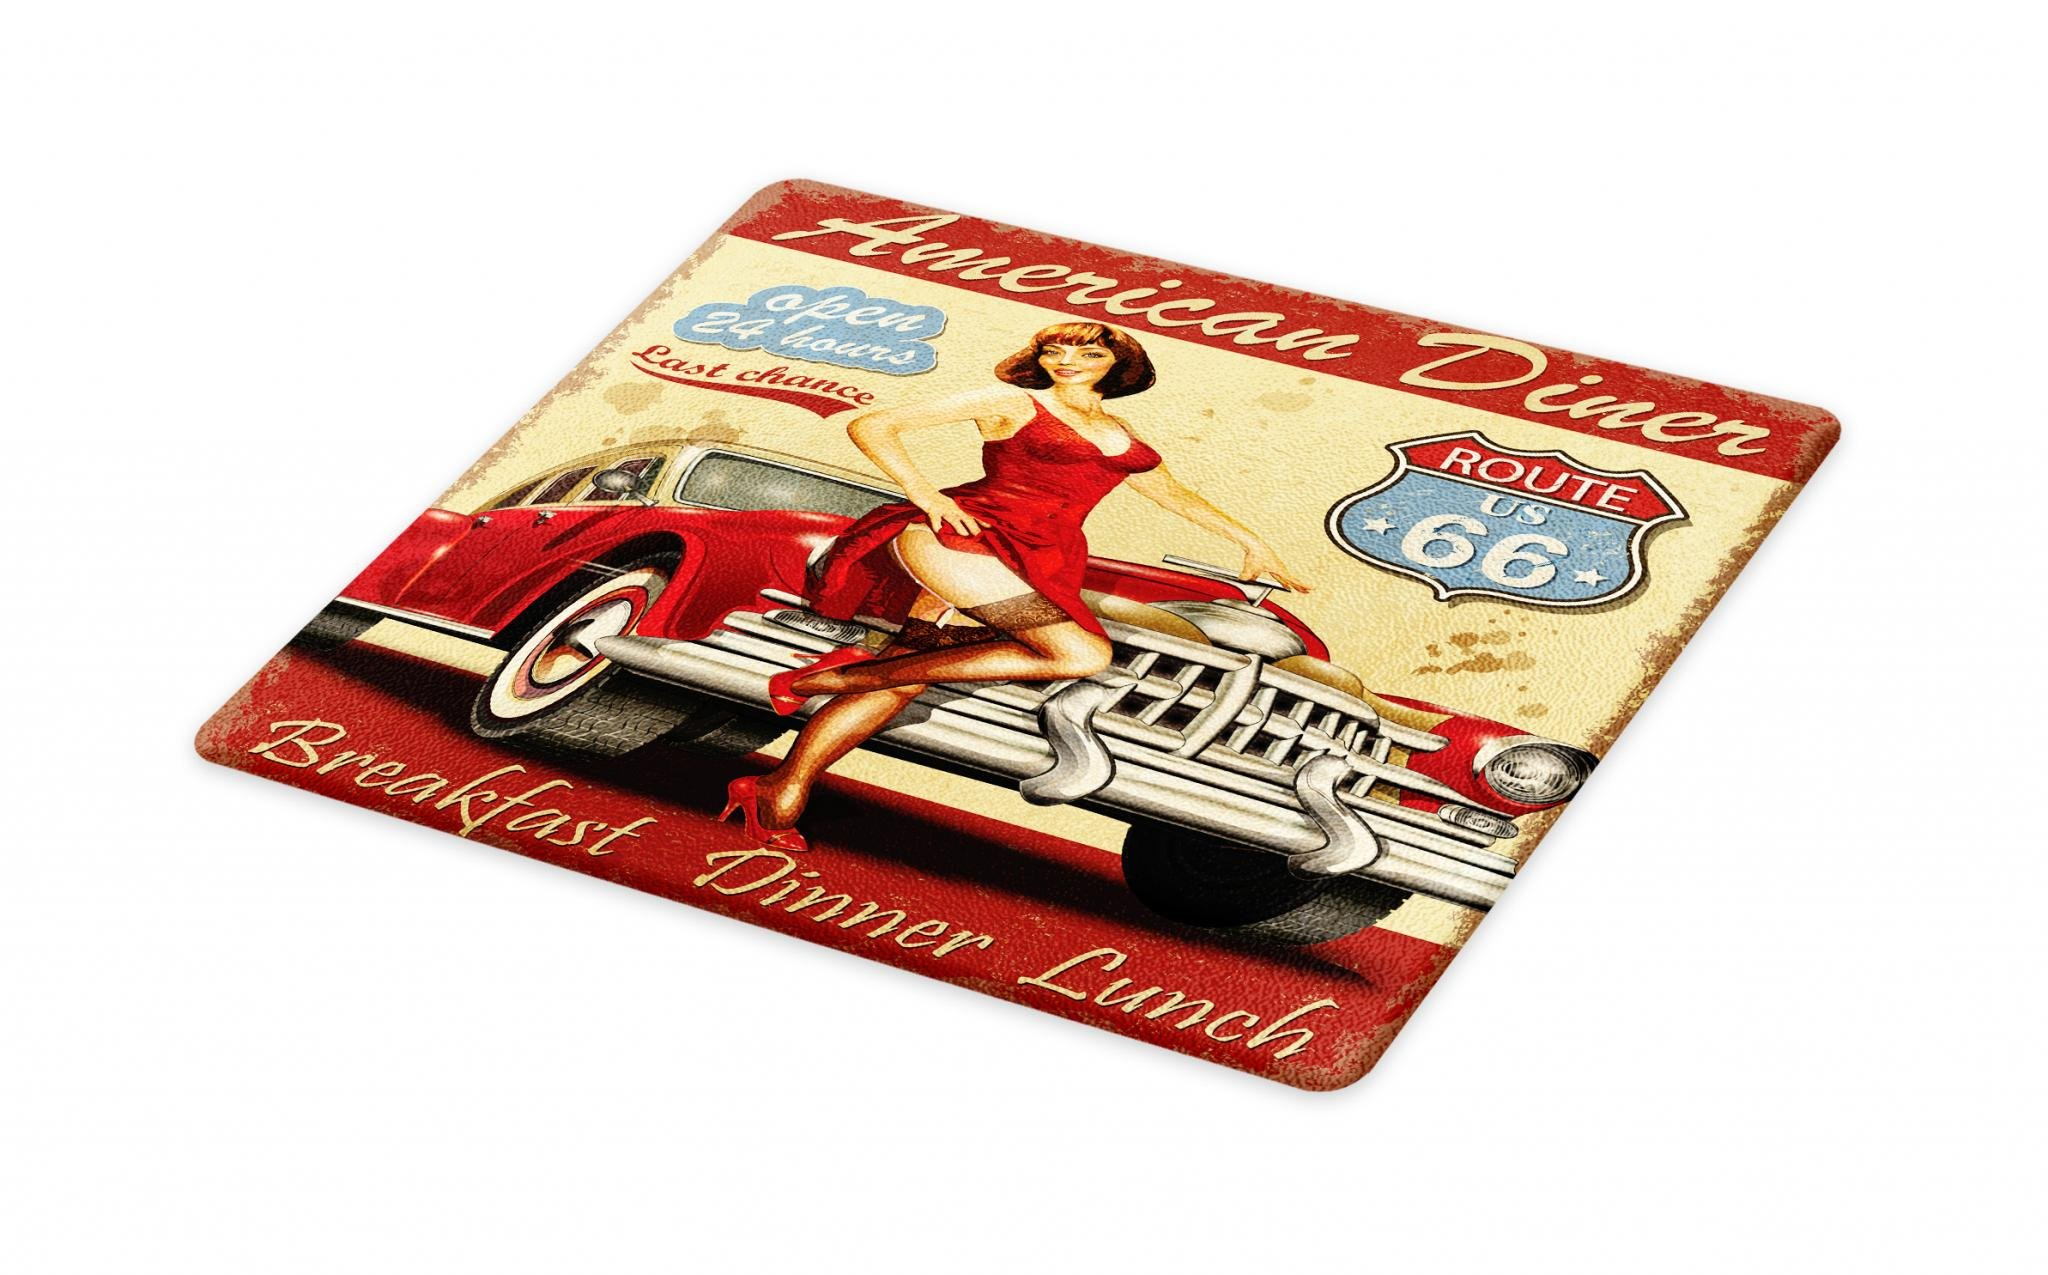 Lunarable Route 66 Cutting Board, American Diner Advertisement Poster with Sexy Girl and Automobile Nostalgic Art, Decorative Tempered Glass Cutting and Serving Board, Large Size, Mustard Red